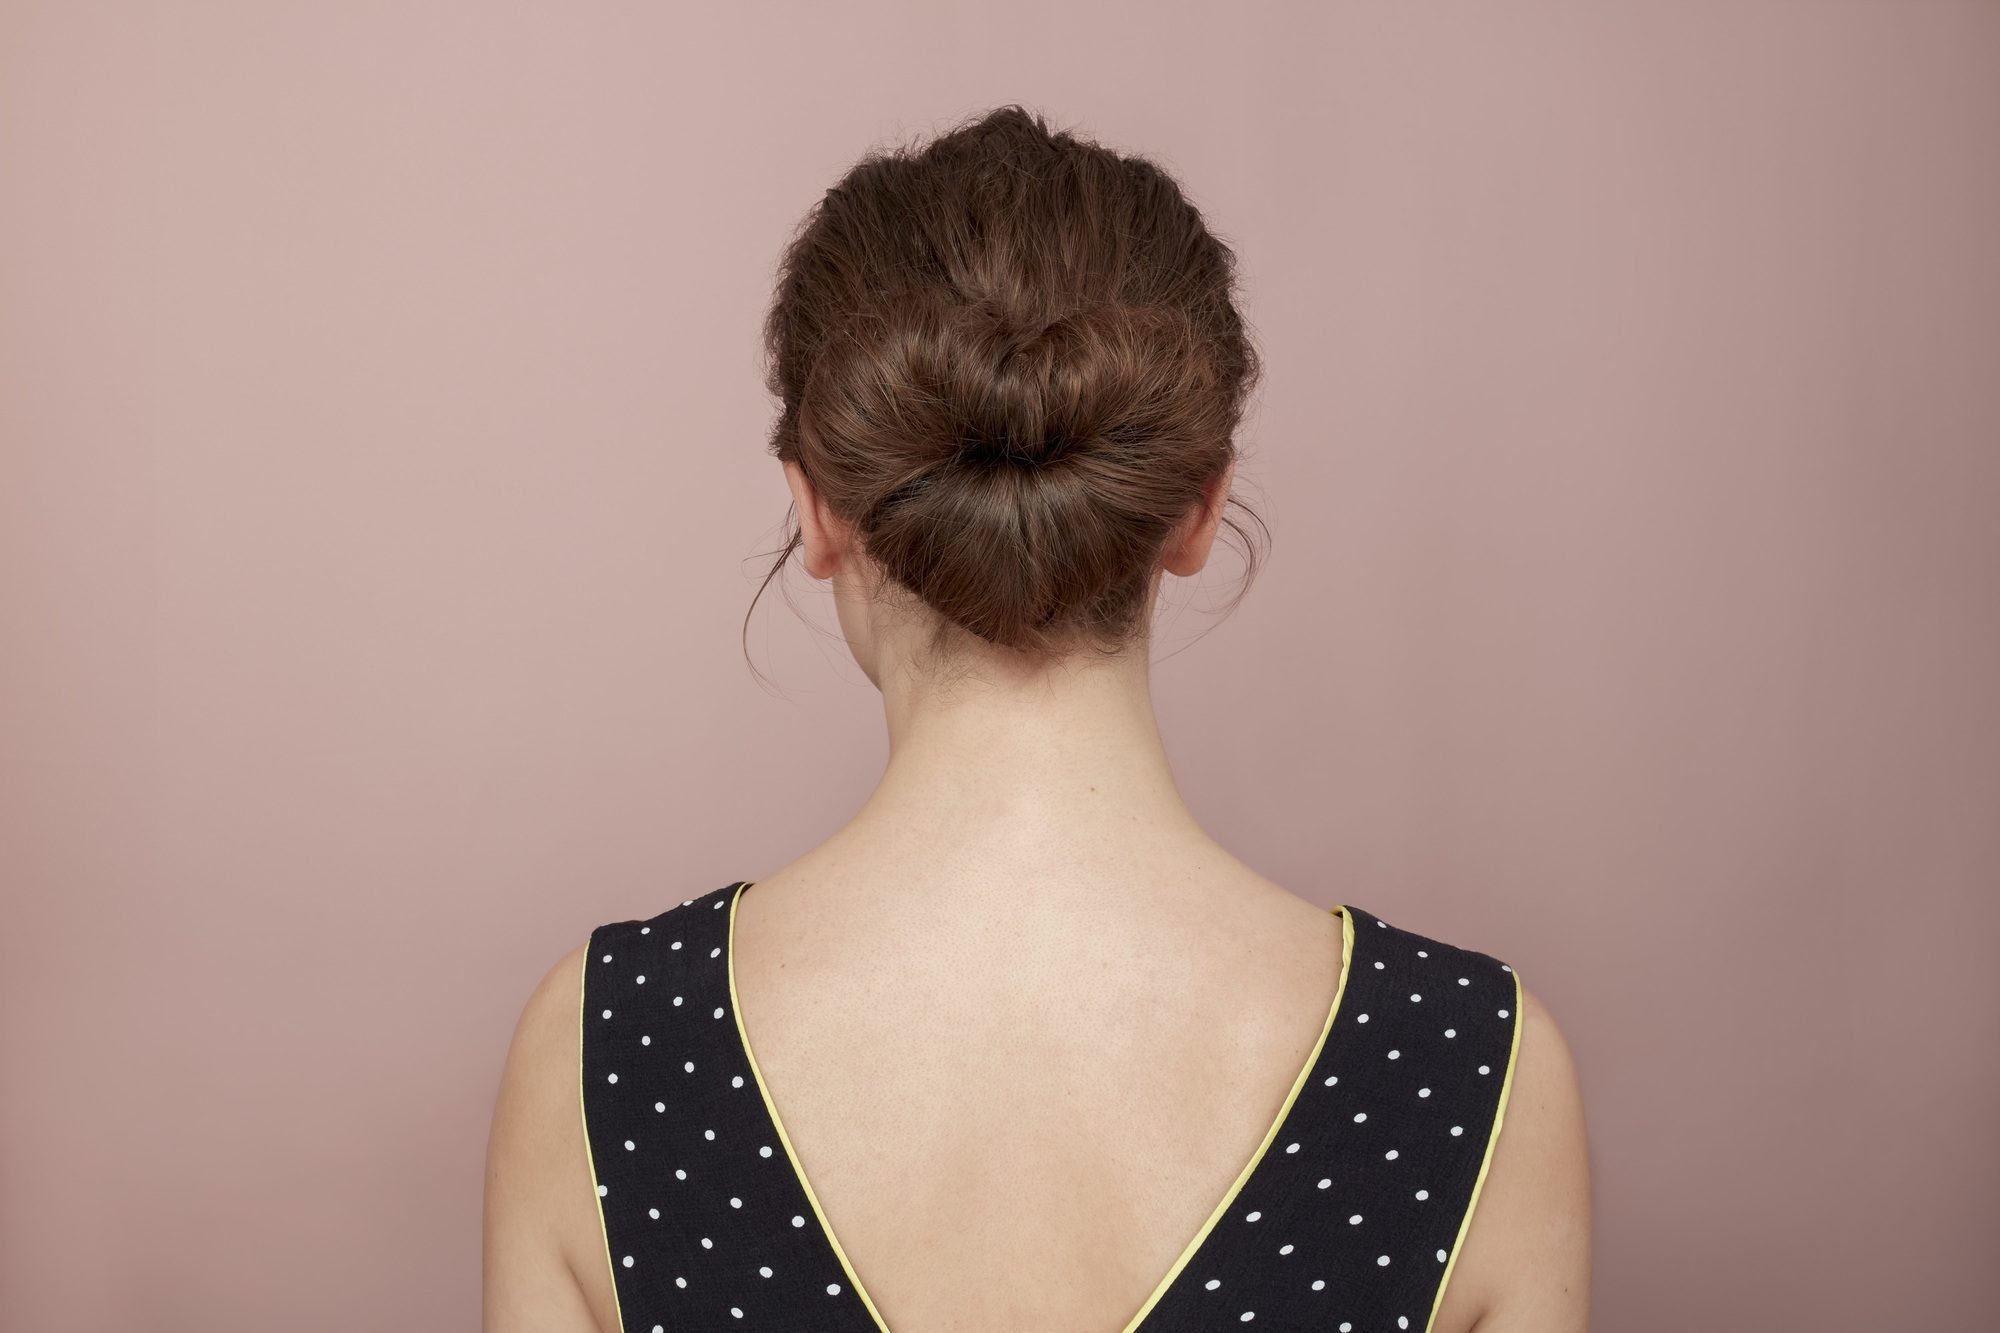 Valentines hair: Back view of a brunette model with her hair in a heart shaped bun, wearing a v-back spotty polka dot black and white dresa